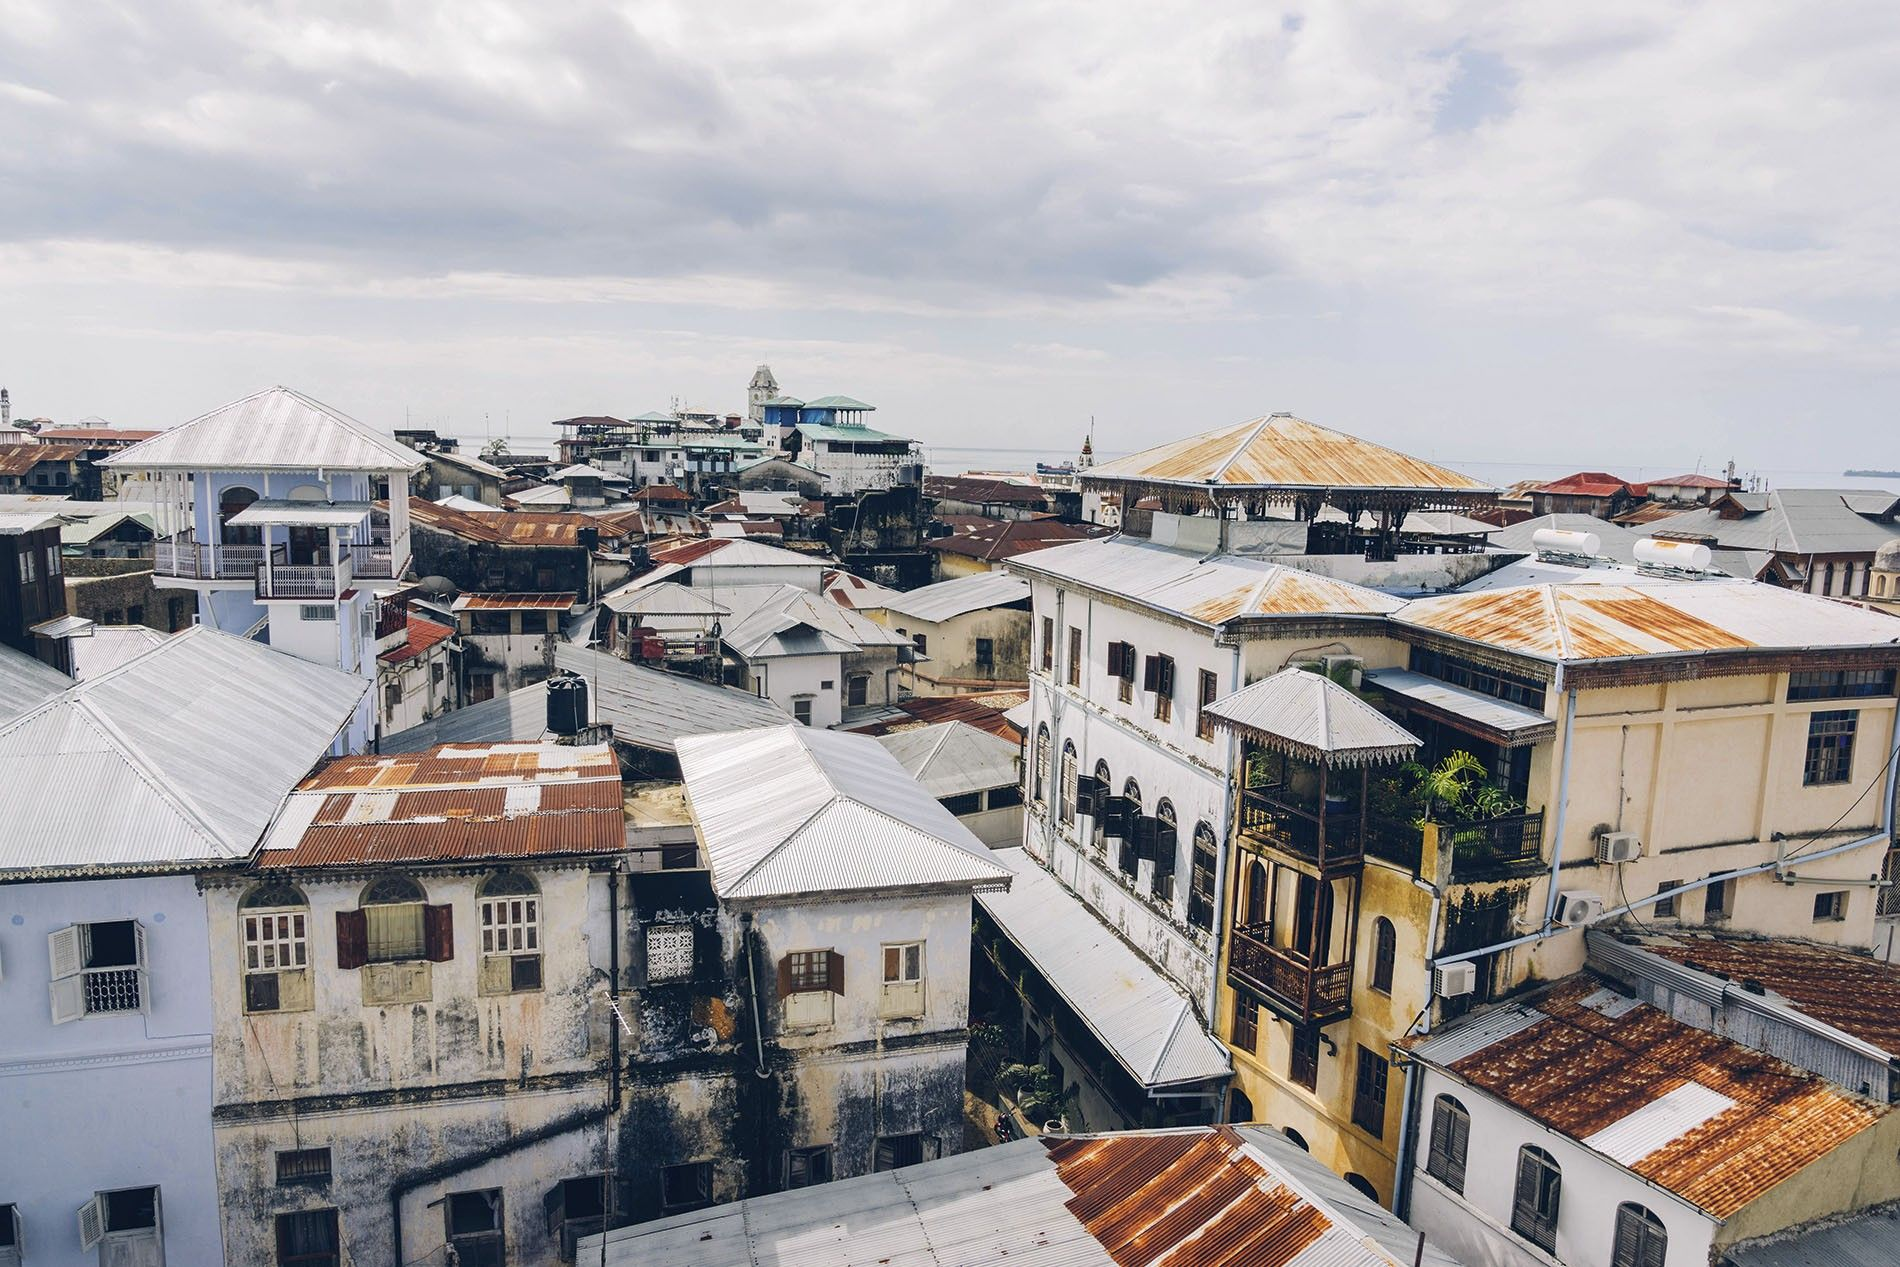 Looking over the tin roofs of Stone Town.